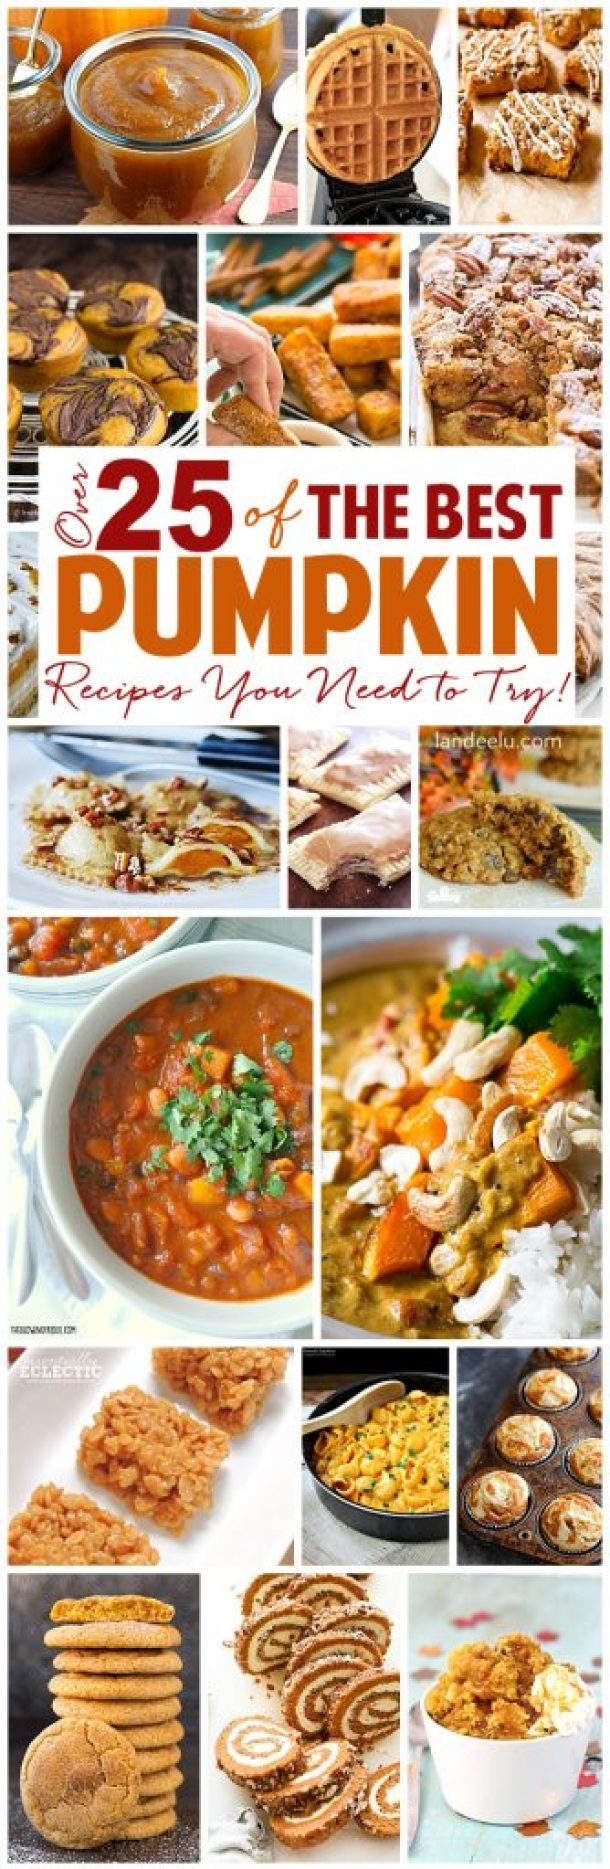 Nothing tastes better than pumpkin in the fall and through winter! Try these pumpkin recipes... some desserts, some savory! Yum! Everything pumpkin!